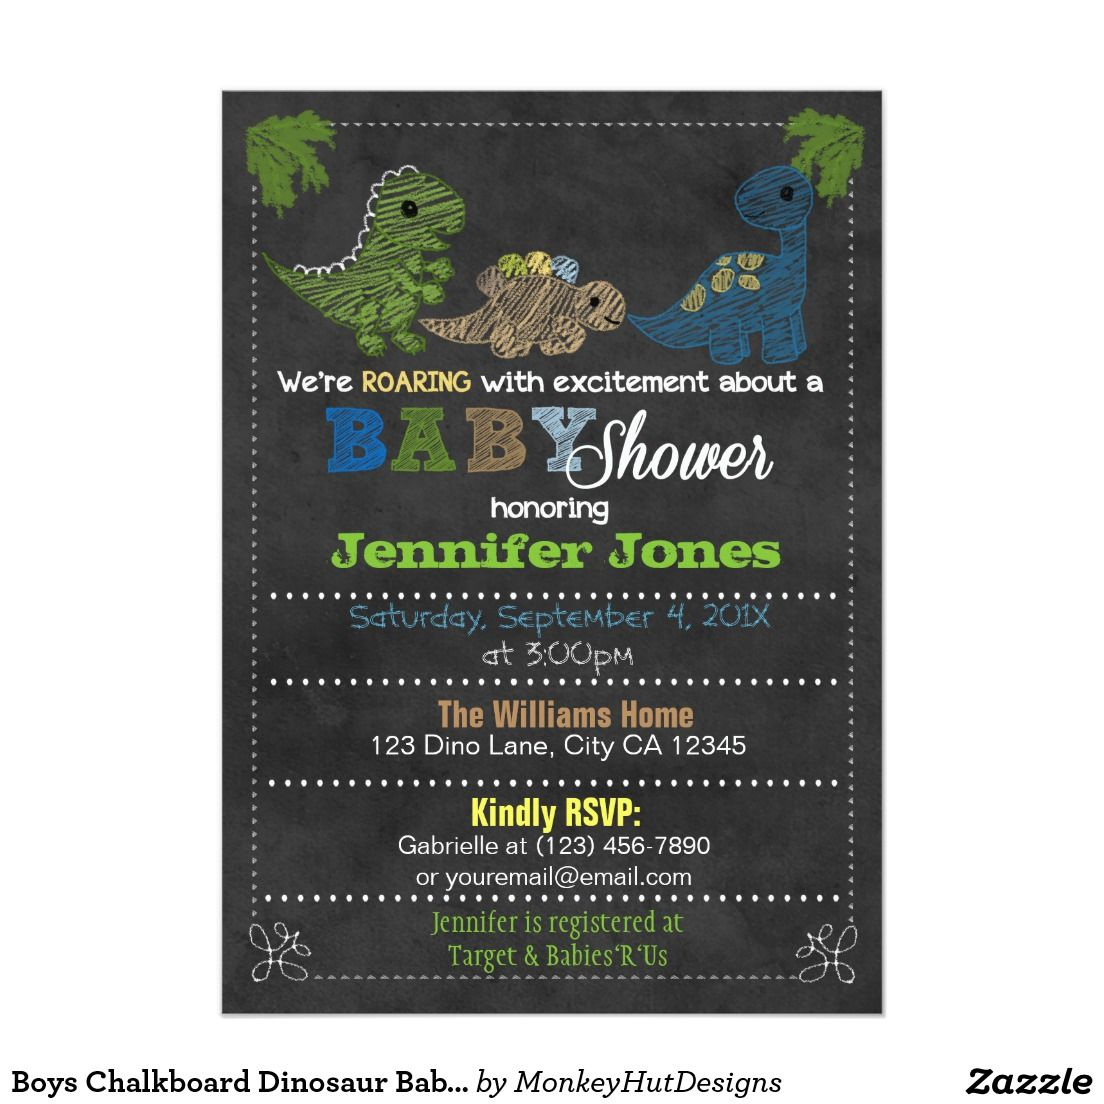 Boys Chalkboard Dinosaur Baby Shower Invitations | C.J\'s Baby Shower ...